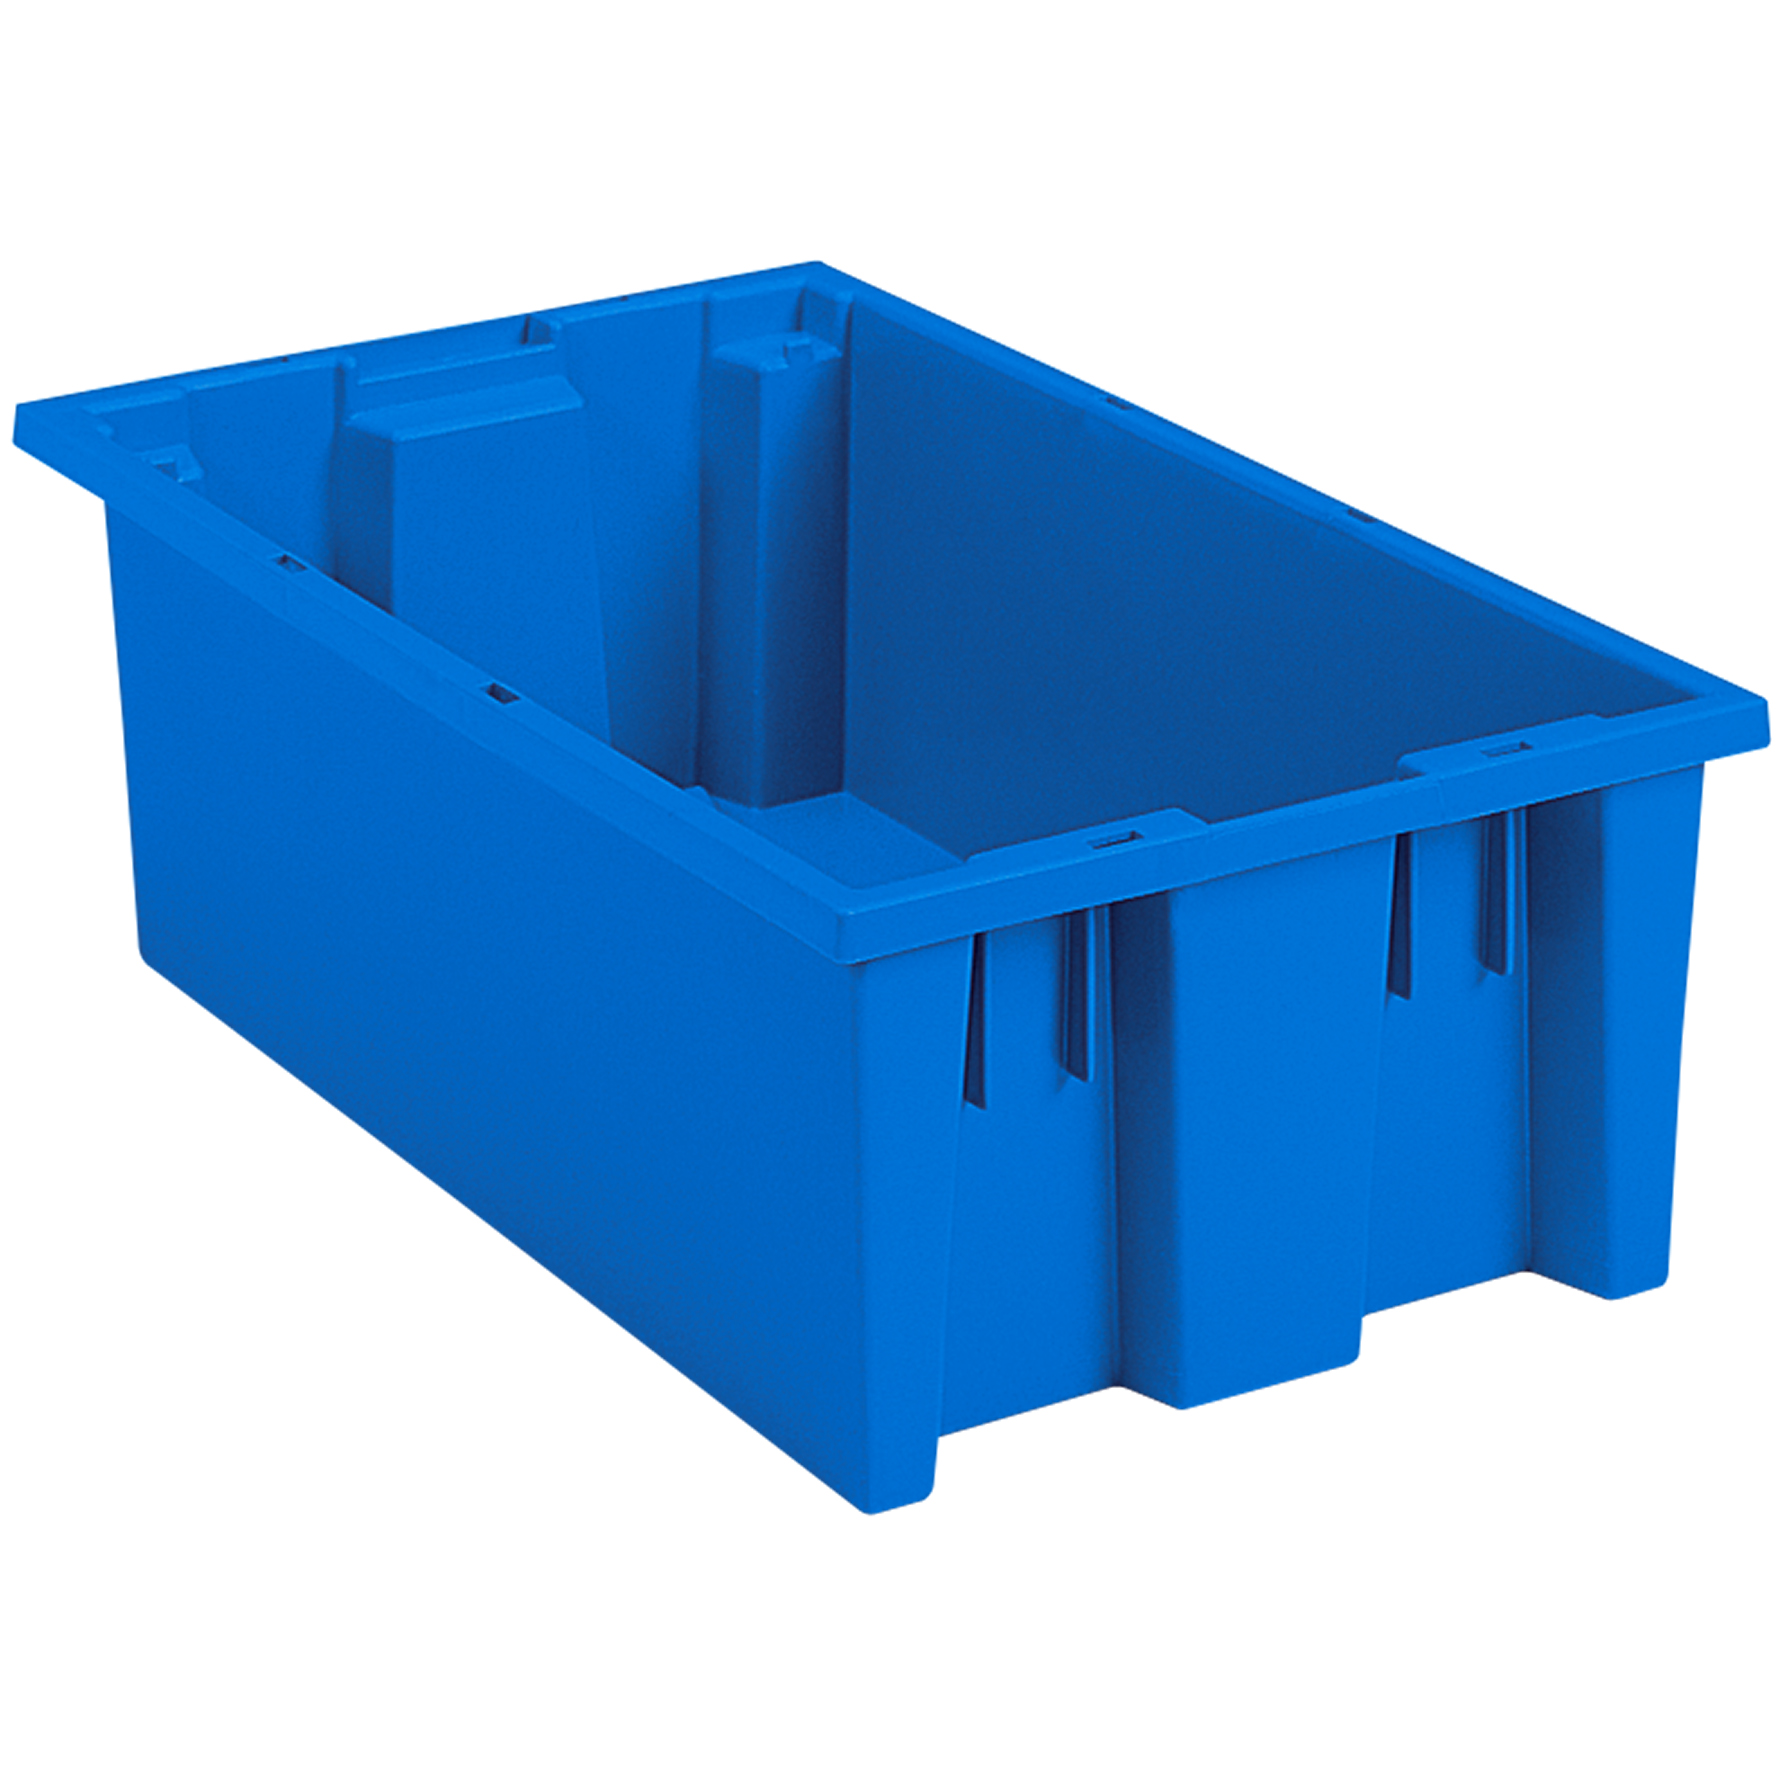 Nest & Stack Tote 18 x 11 x 6, Blue (35180BLUE).  This item sold in carton quantities of 6.